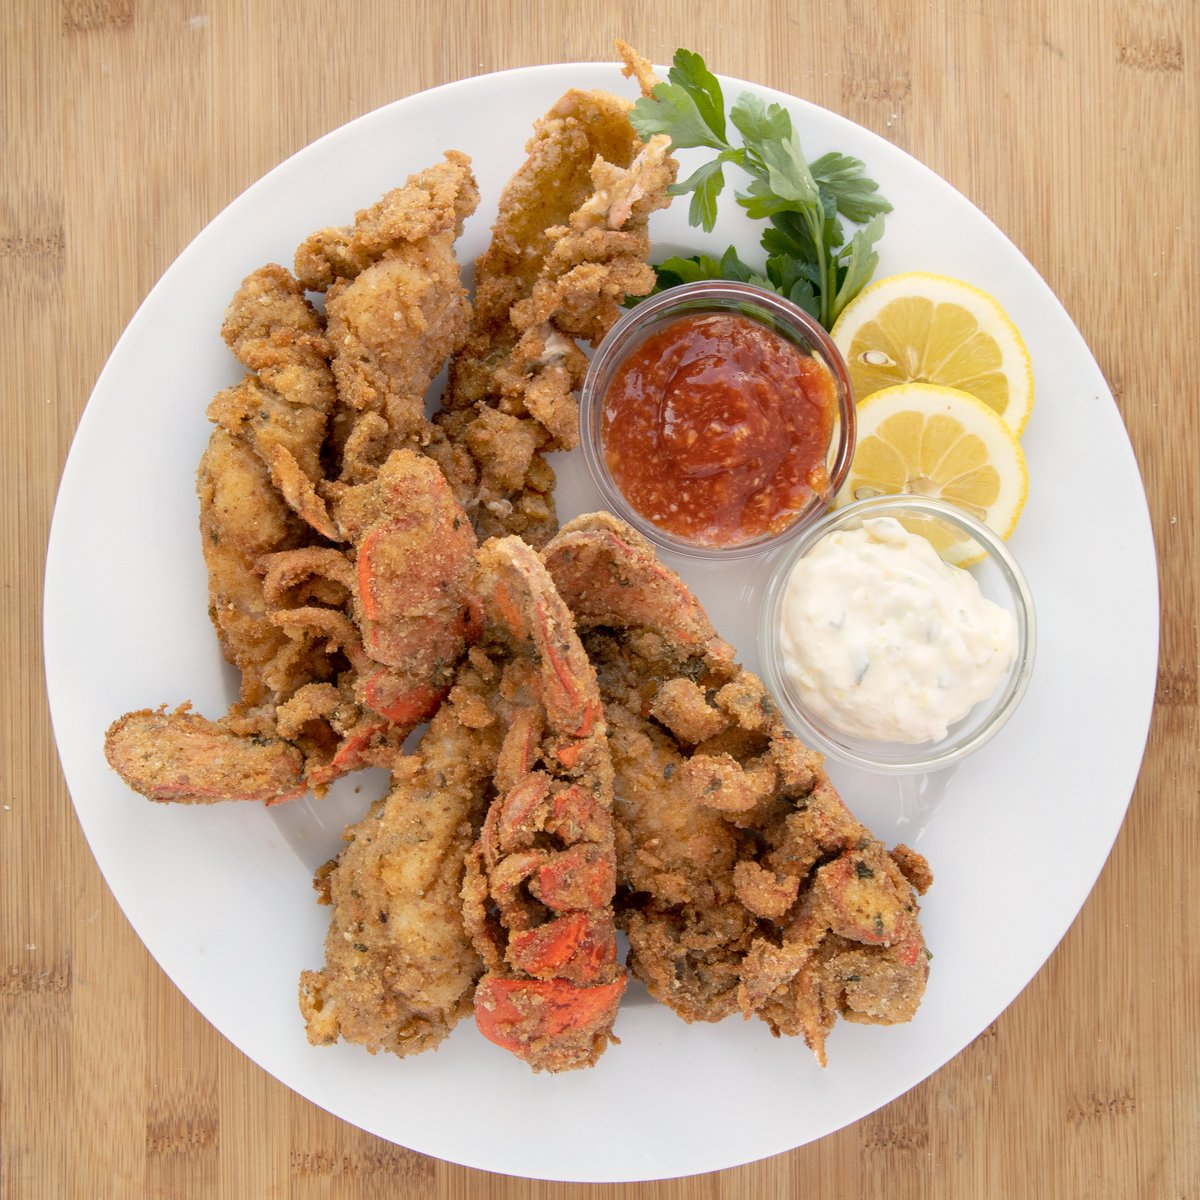 When it comes to seafood, lobster is the king. And my fried lobster tails is the perfect restaurant-style dish to showcase these sweet petite lobster tails.  #foodie #seafood #lobster #chef  Recipe Here -> https://t.co/O2TgxBhlv9 https://t.co/XwBEJqXu7u